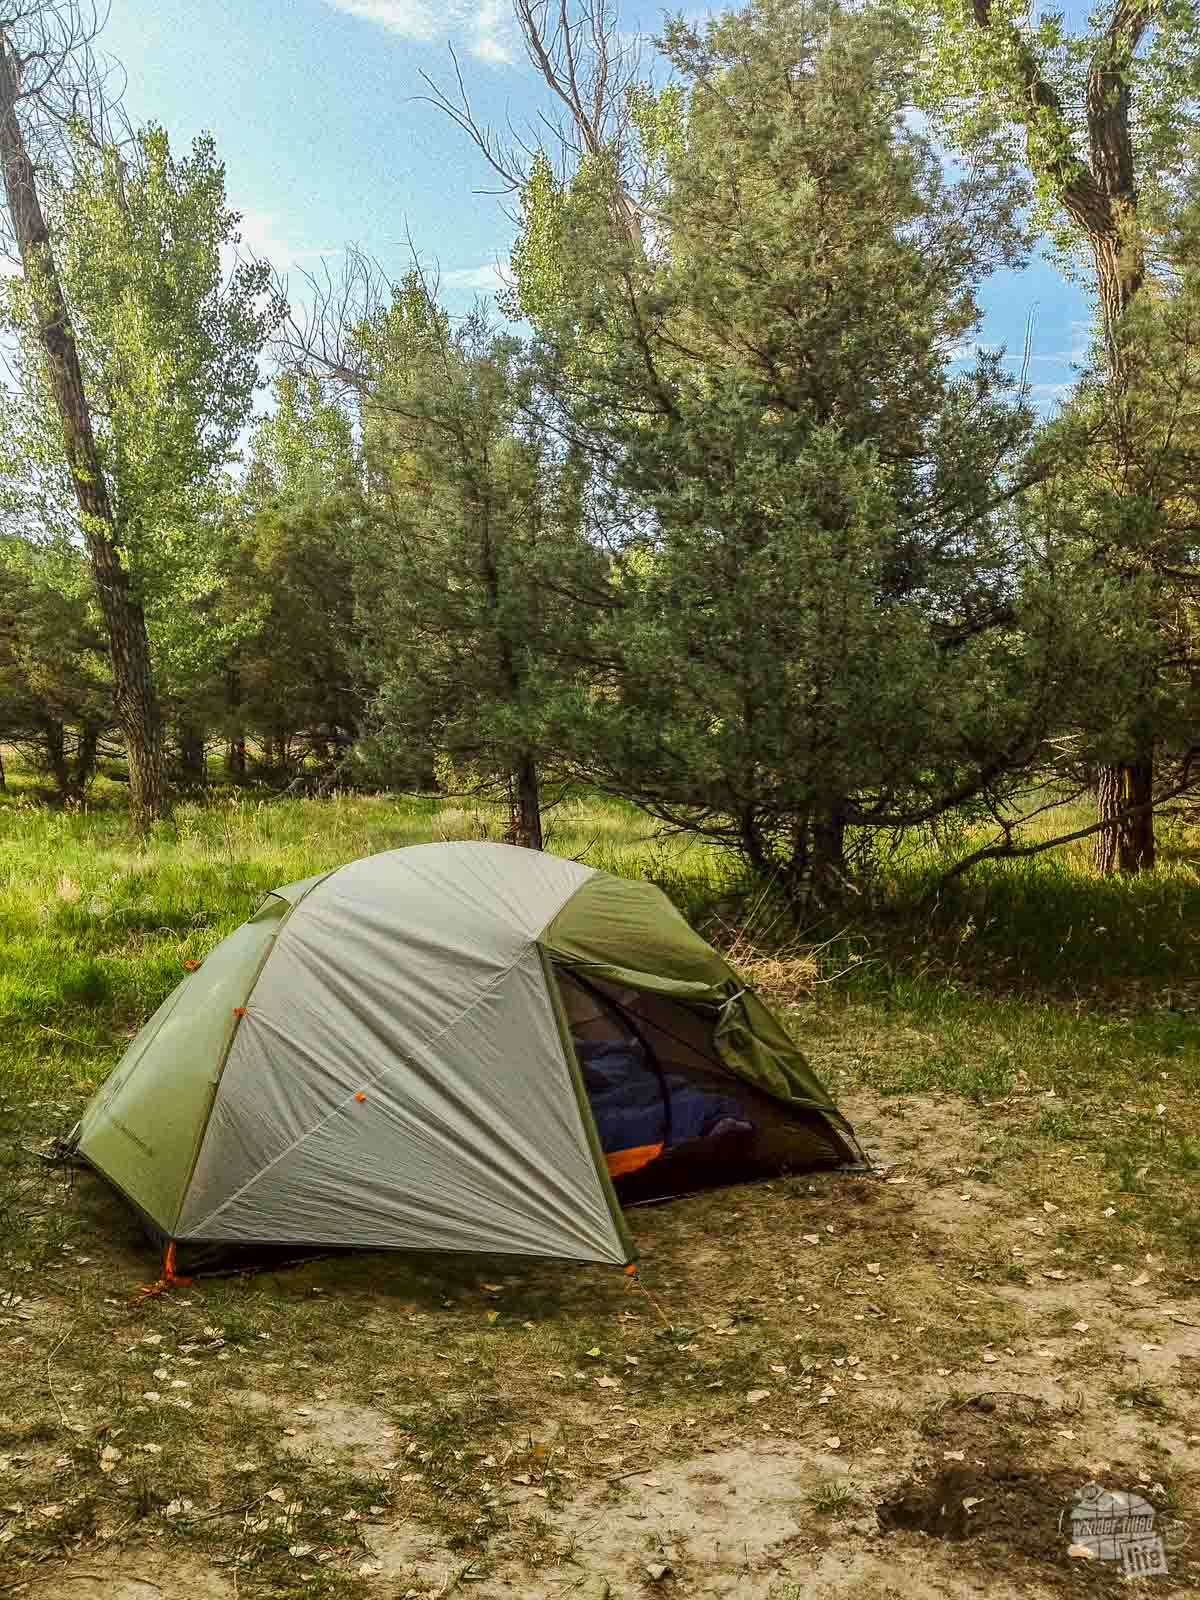 Our site in Cottonwood Campground when visiting Theodore Roosevelt National Park.